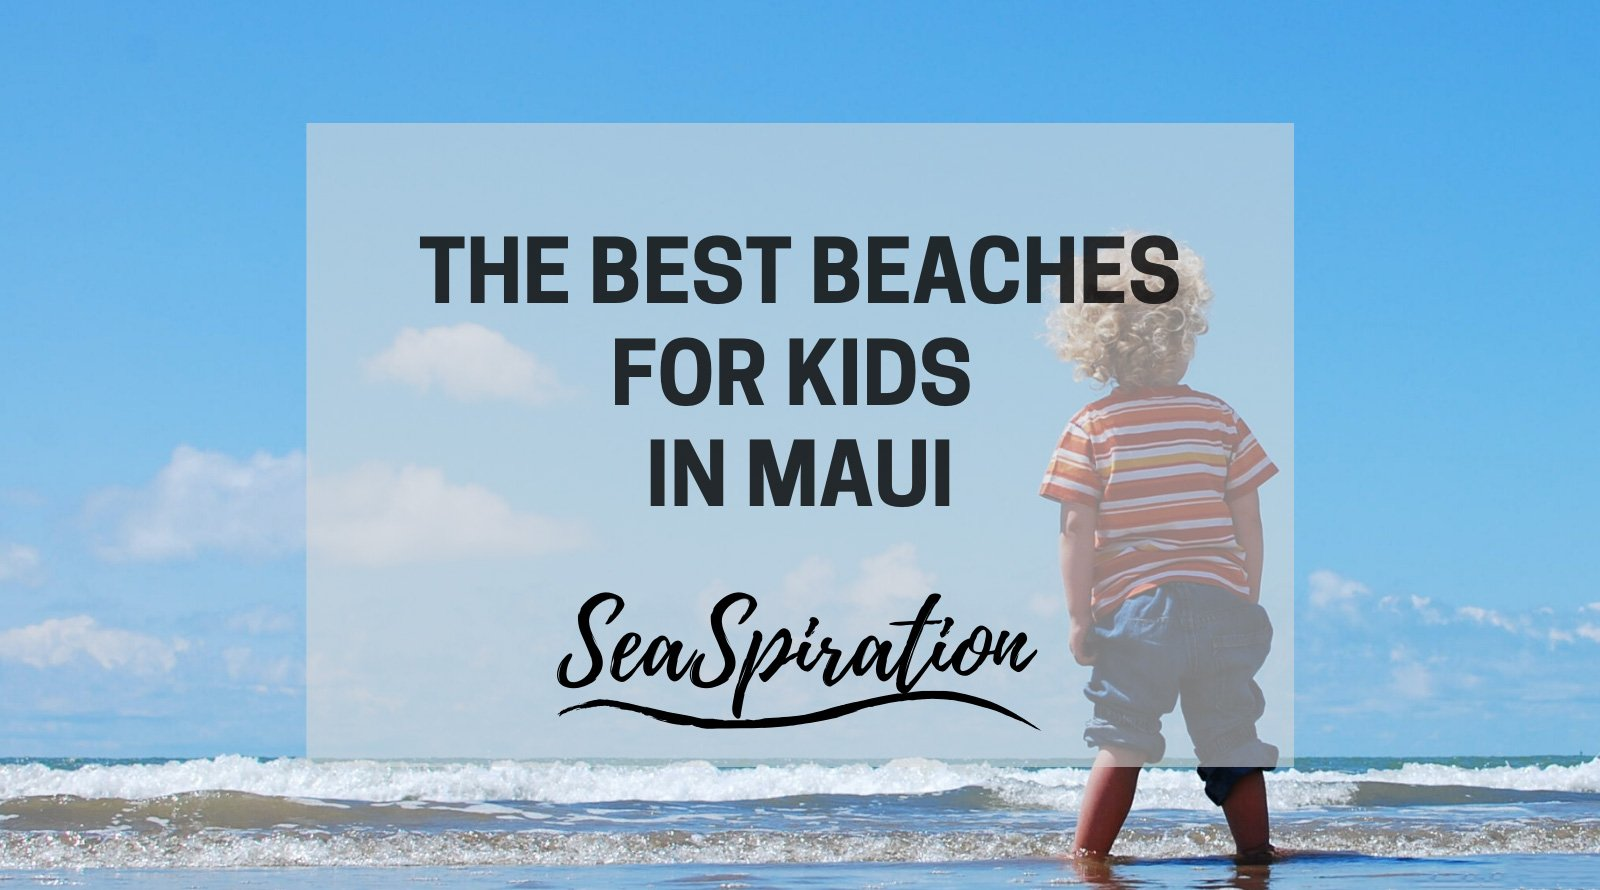 Best beaches for kids in Maui